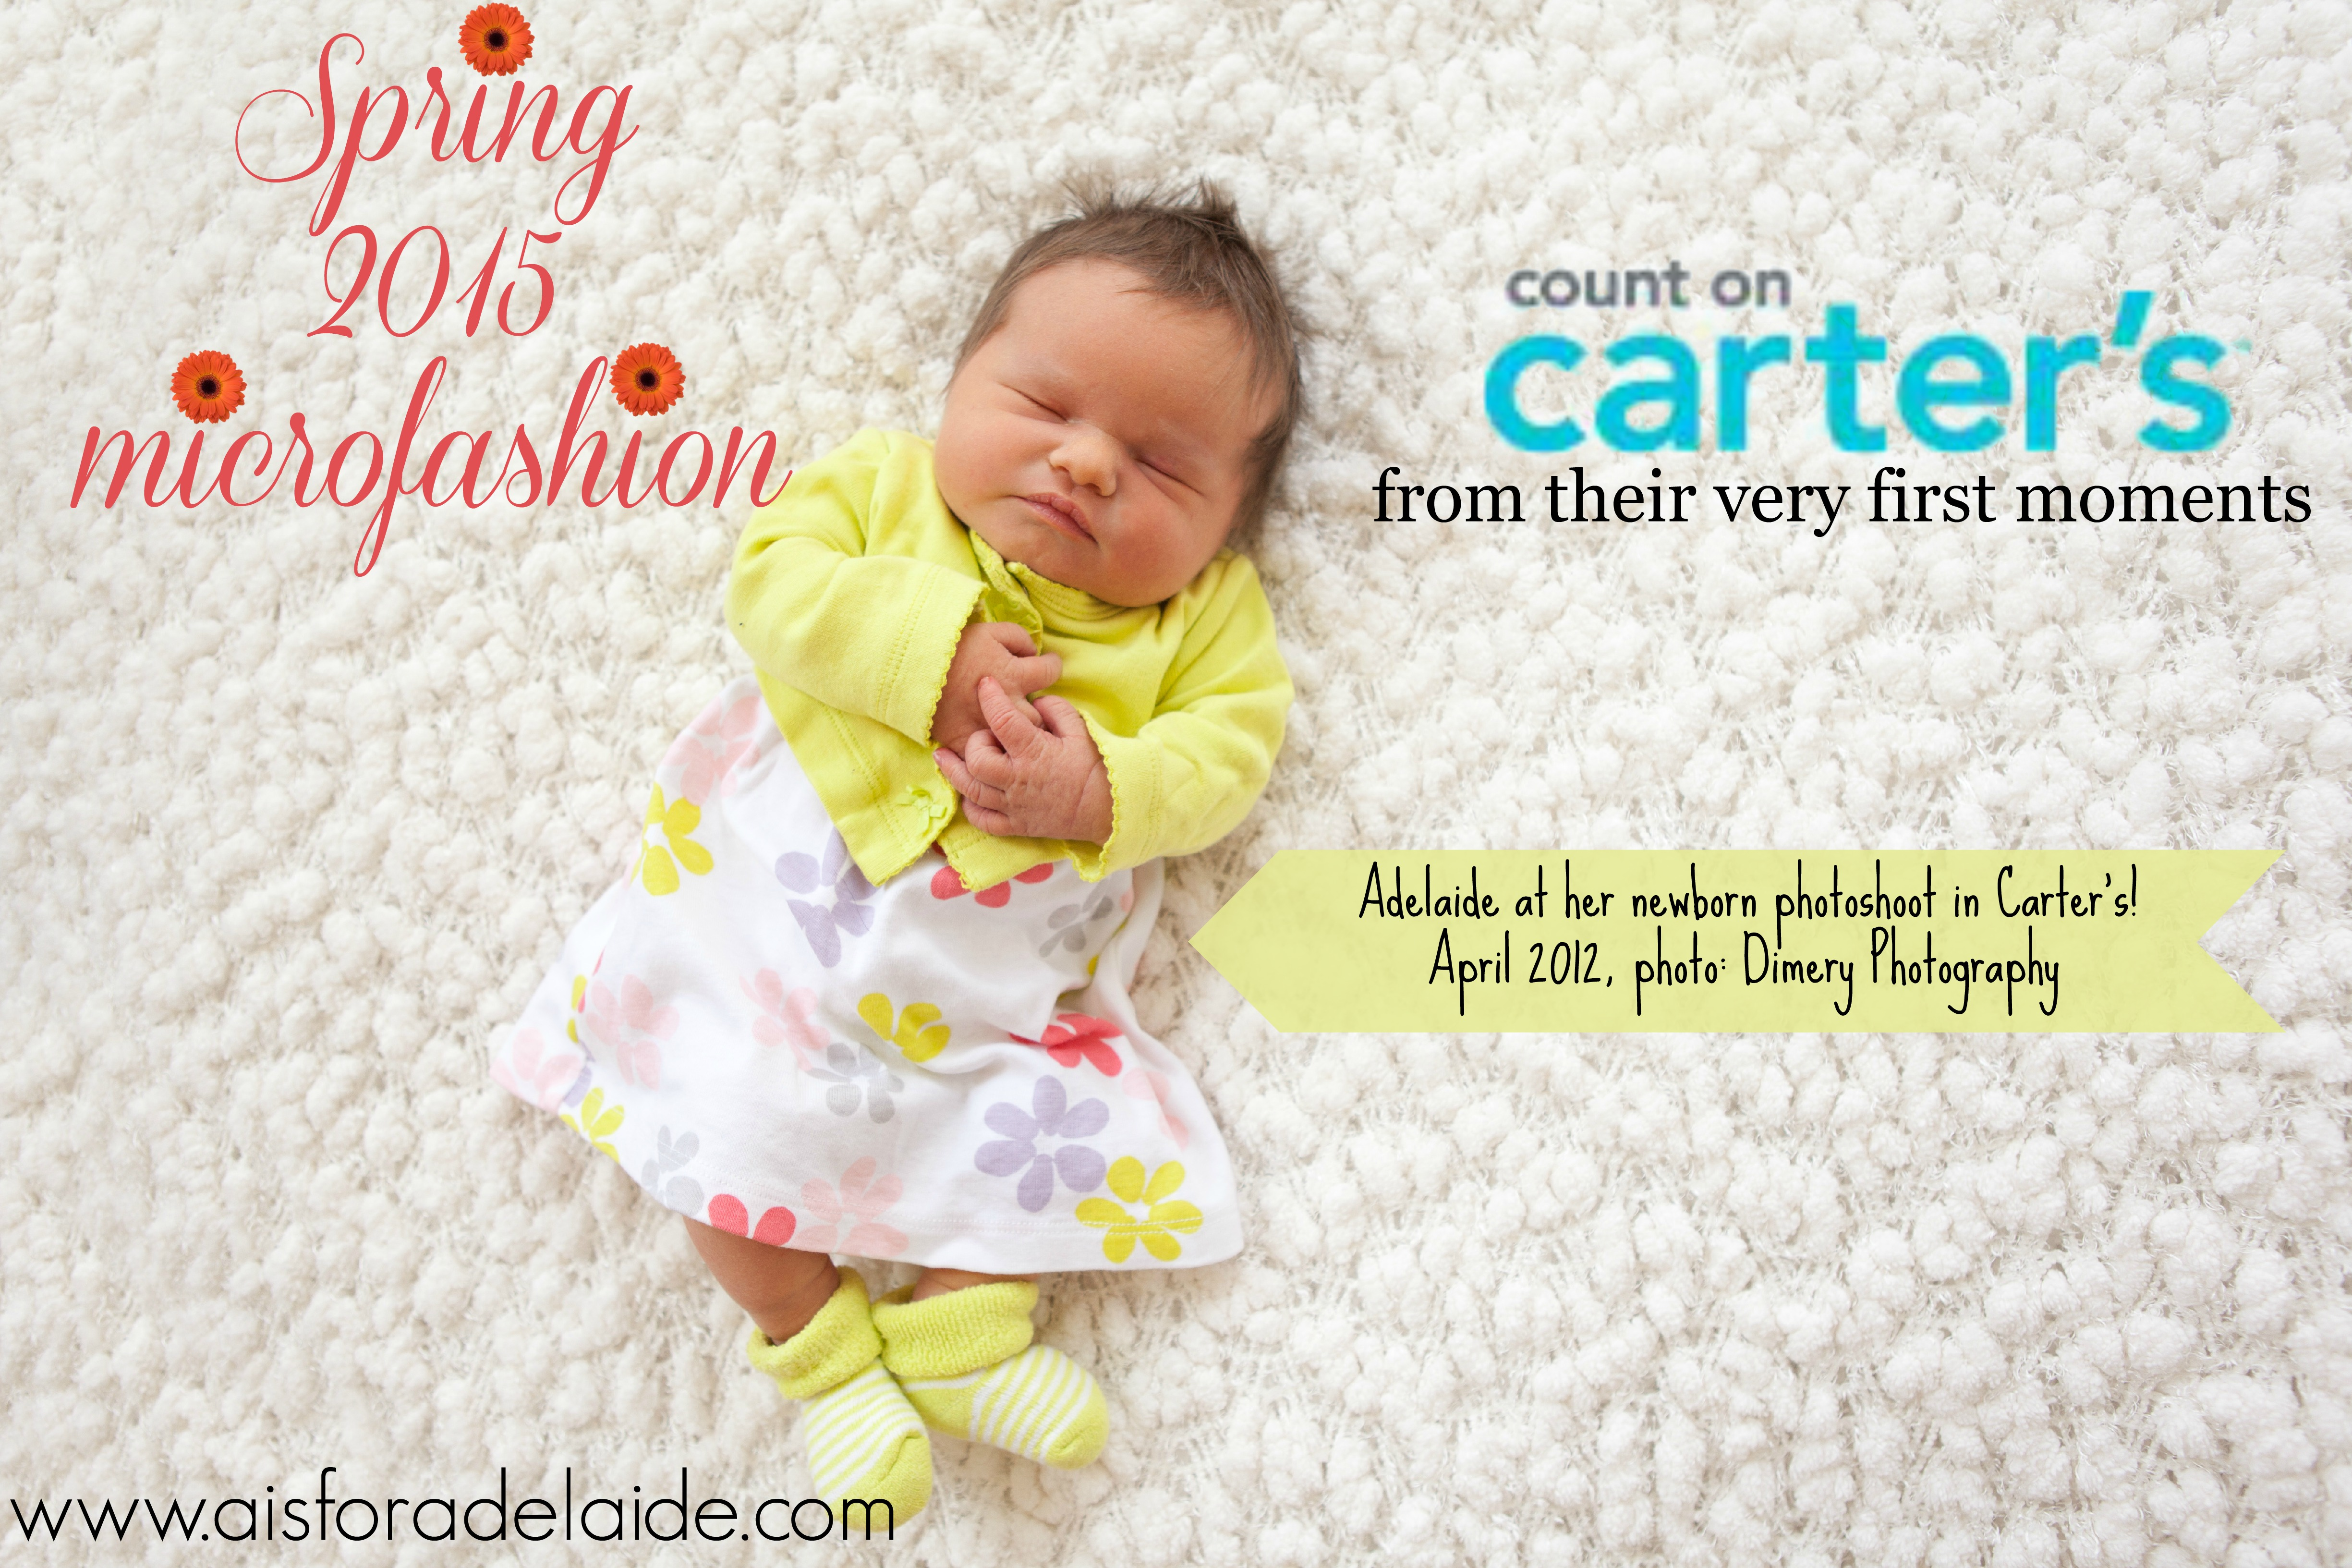 #SpringIntoCarters for the season's best #microfashion! #IC #ad #aisforadelaide